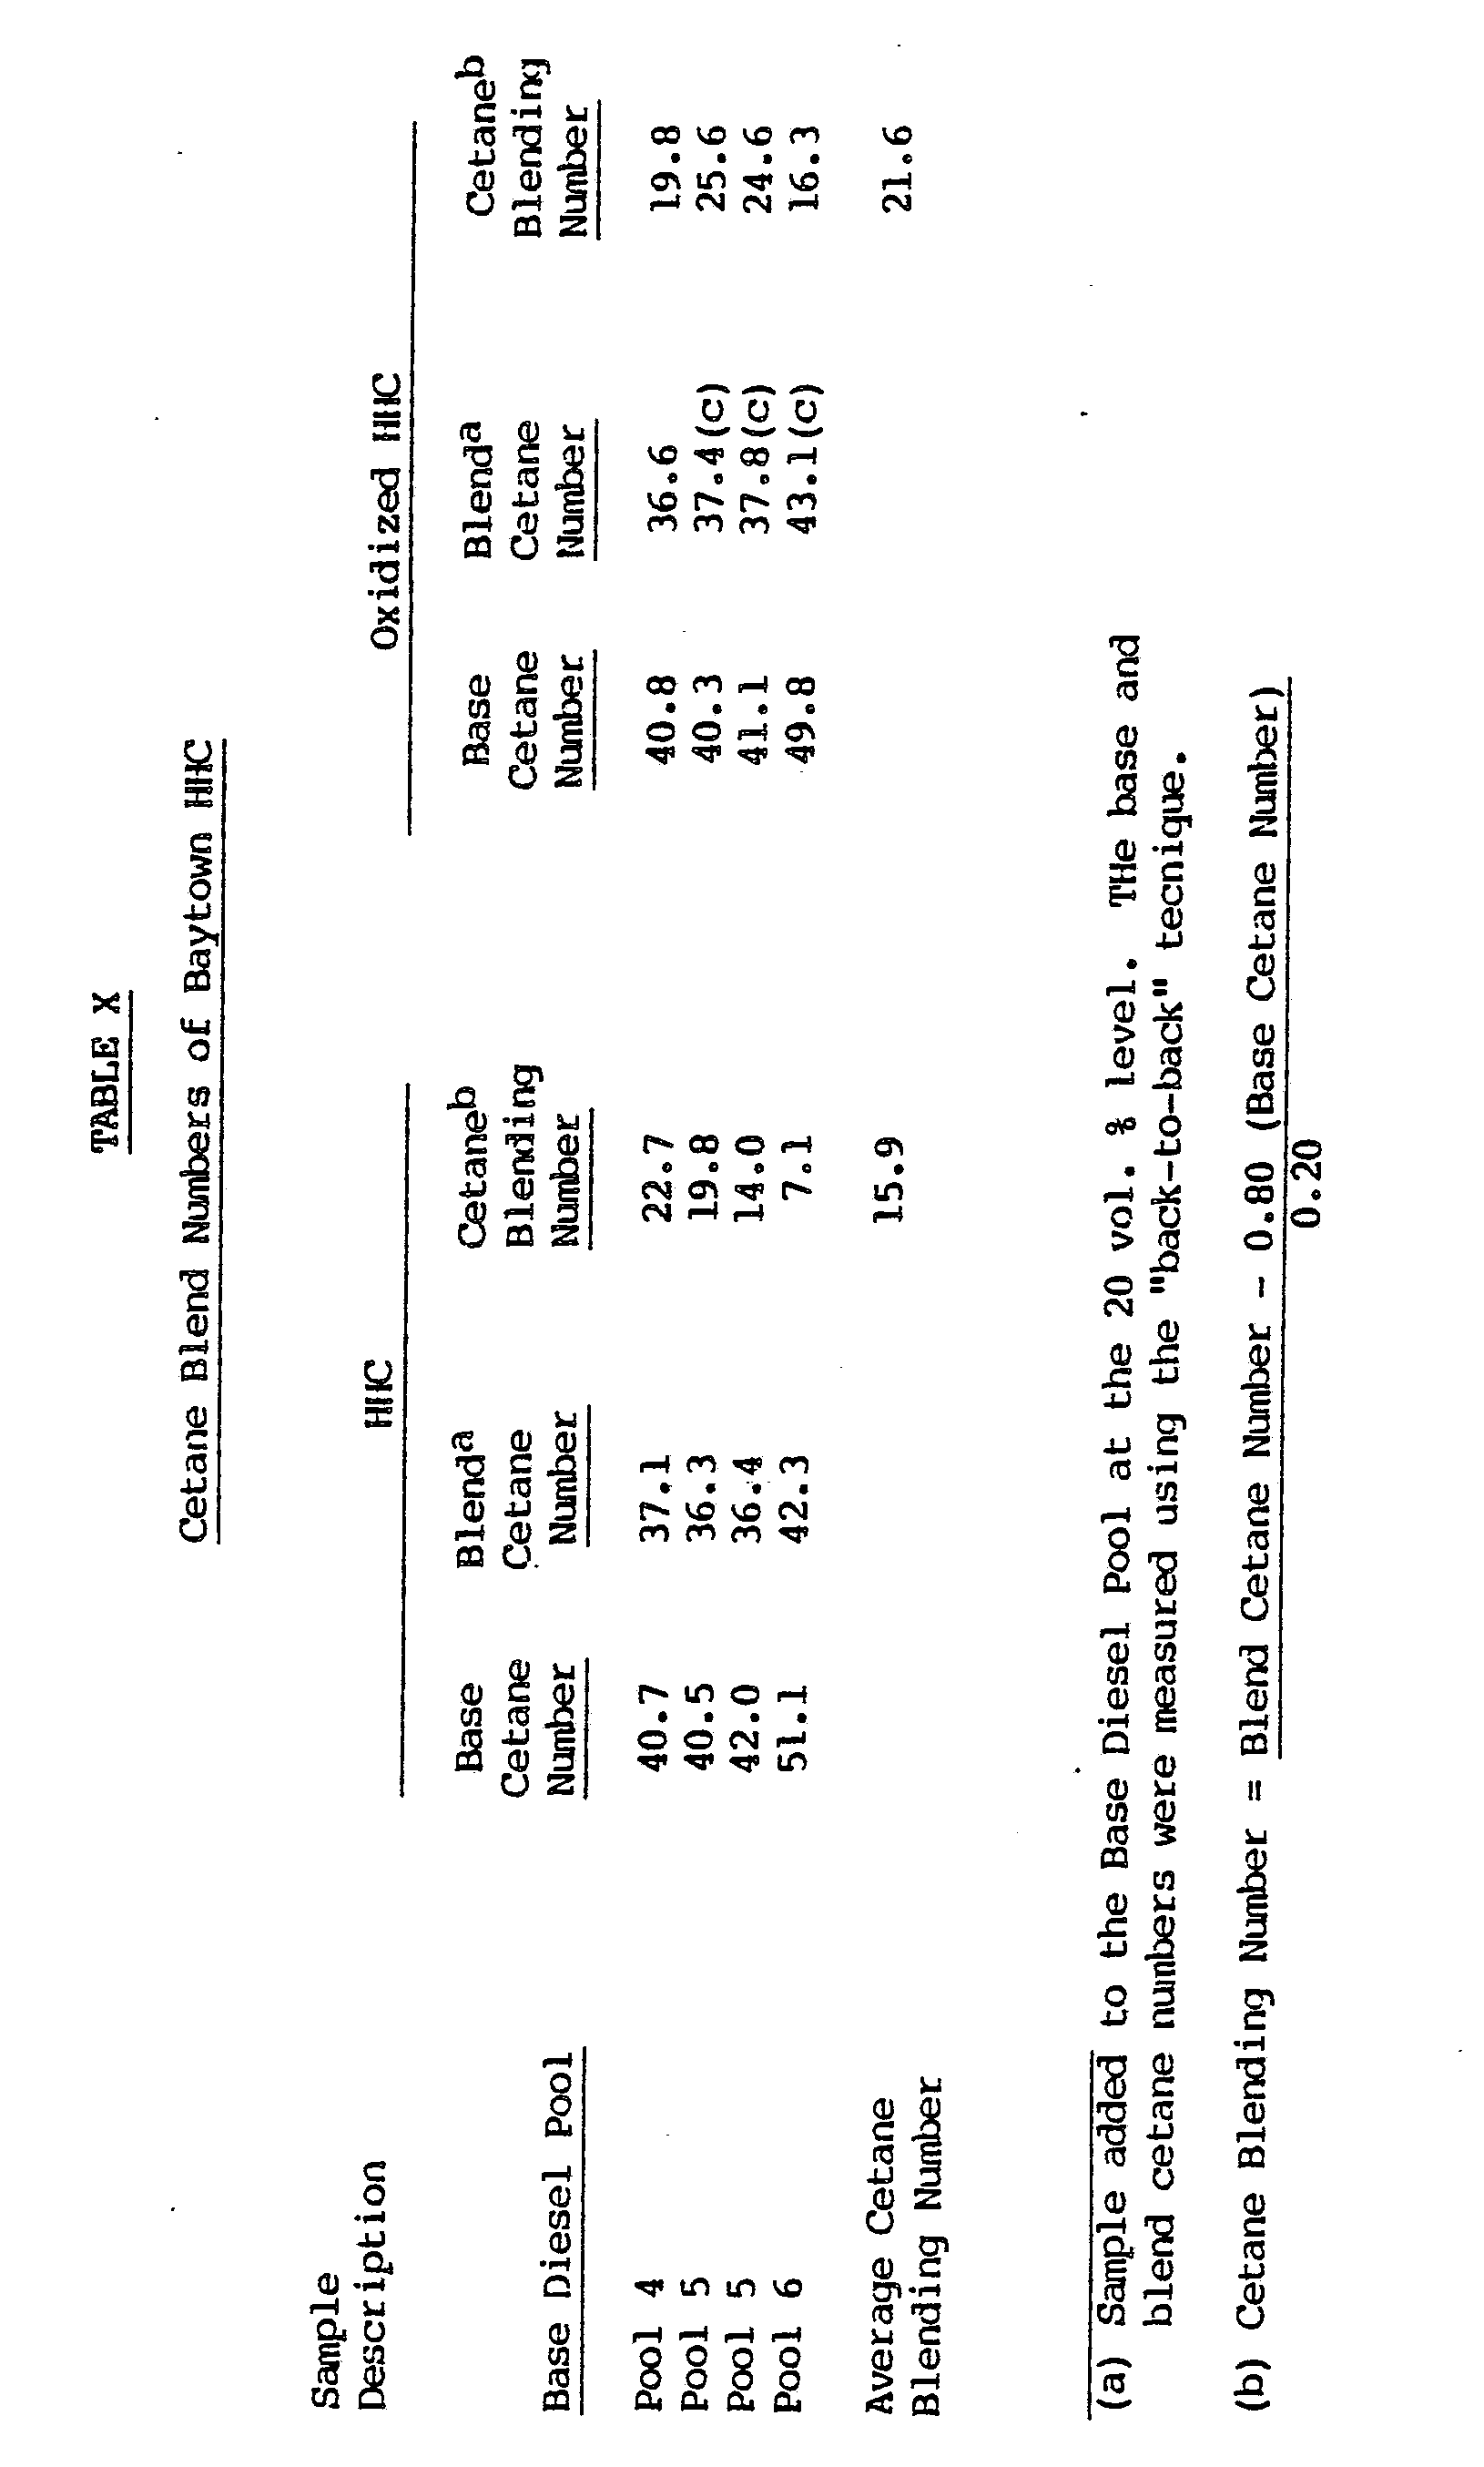 EP0252606A2 - Process for increasing the cetane number of